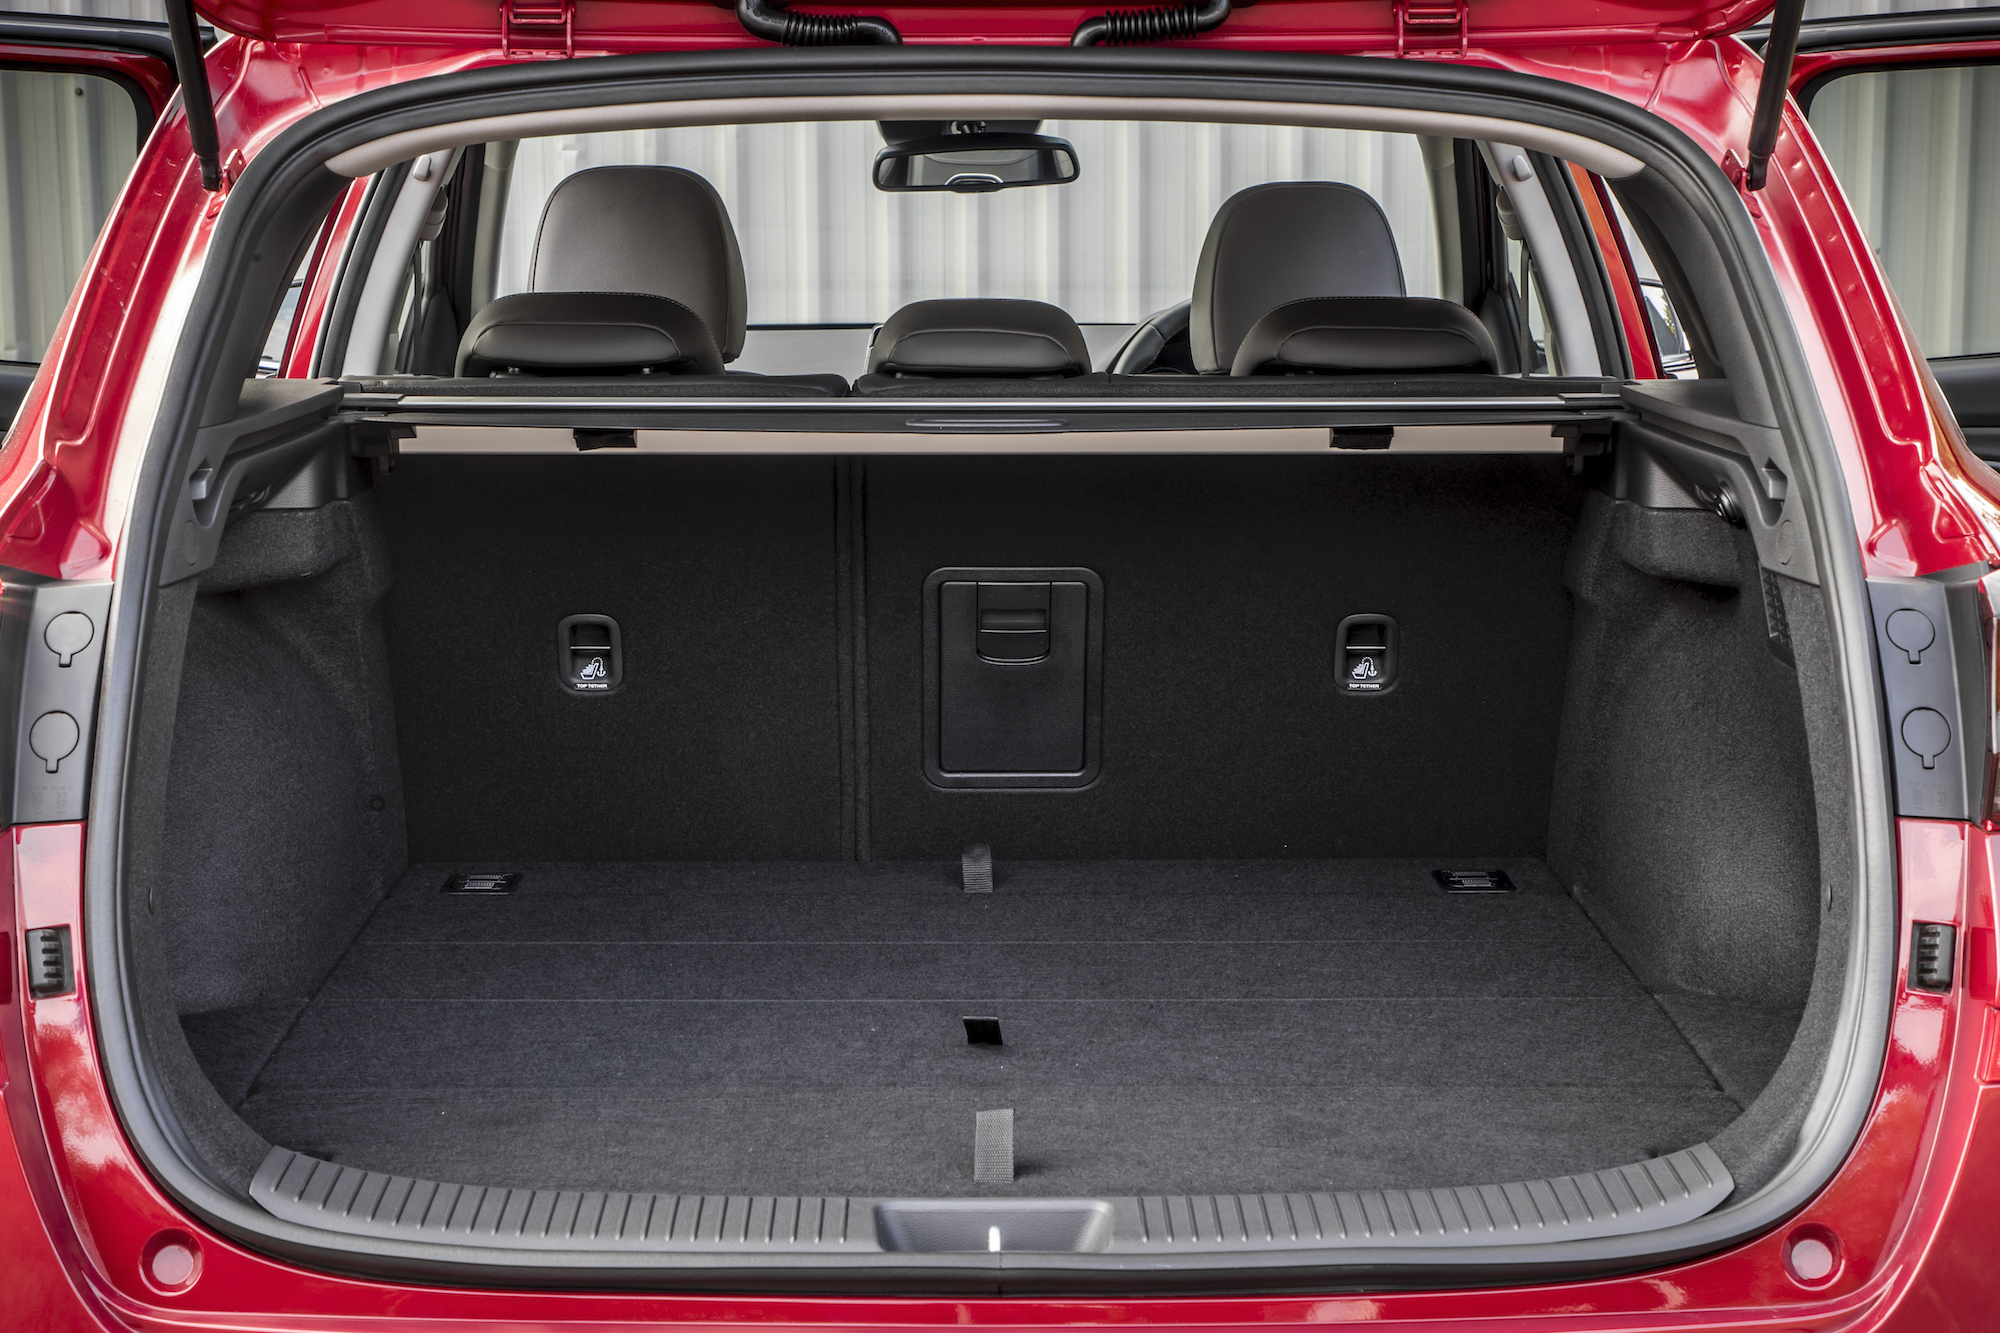 The i30 Tourer offers a decent sized boot